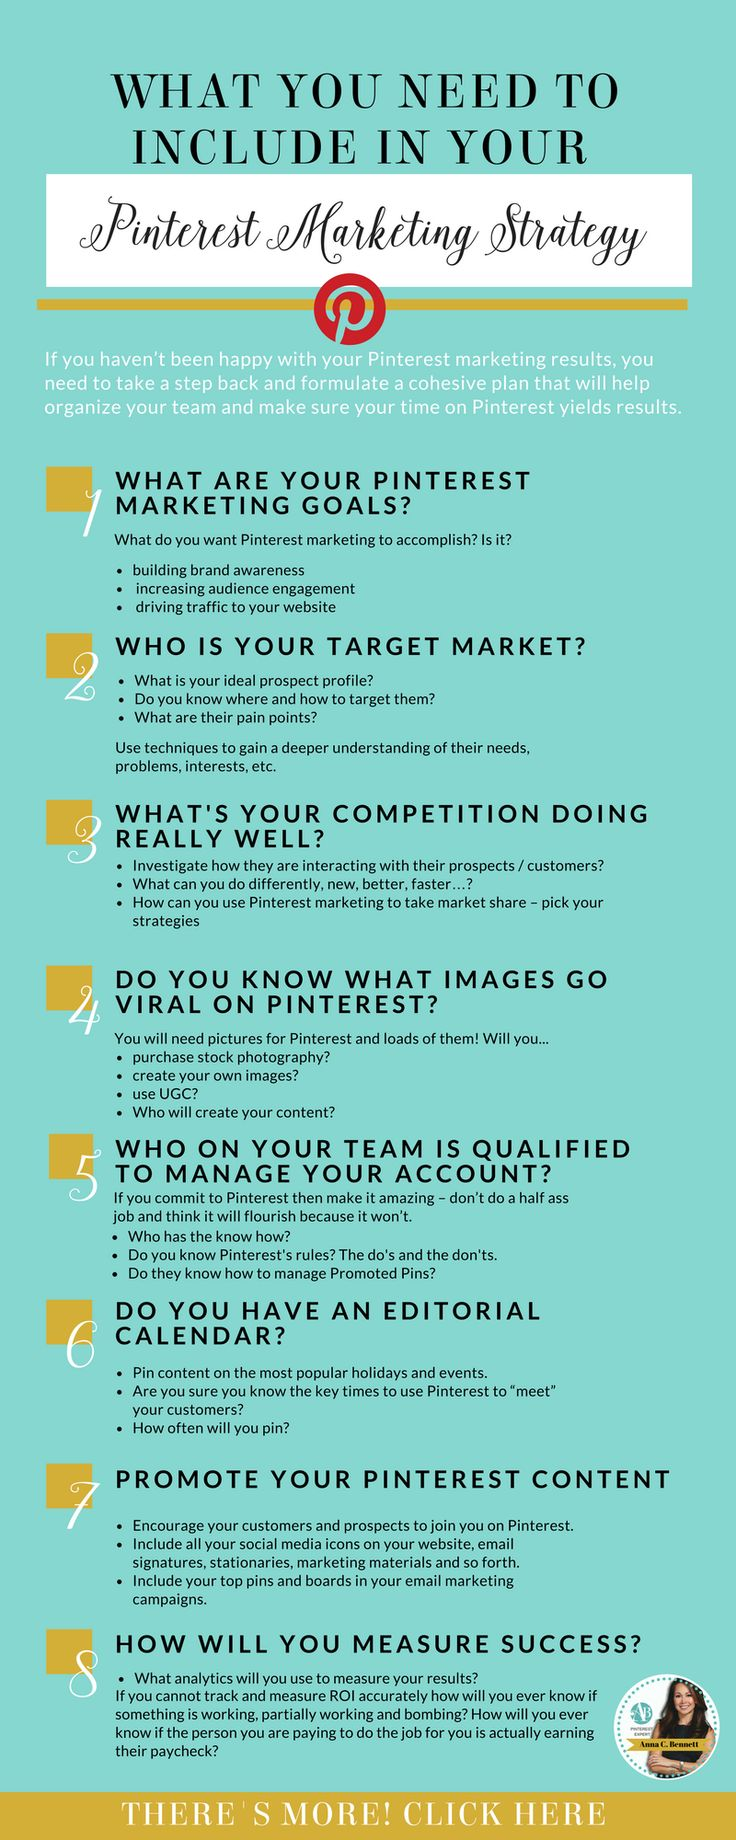 Are you going around and around in circles not sure if you're not sure you're doing it right on Pinterest then get help from a recognized expert like Anna Bennett. Avoid making painful mistakes that will cost you time and money. Click here to learn more http://www.whiteglovesocialmedia.com/pinterest-consultant-9-ways-to-create-a-simple-and-successful-pinterest-marketing-strategy-in-2014/ | Pinterest Tips for Business